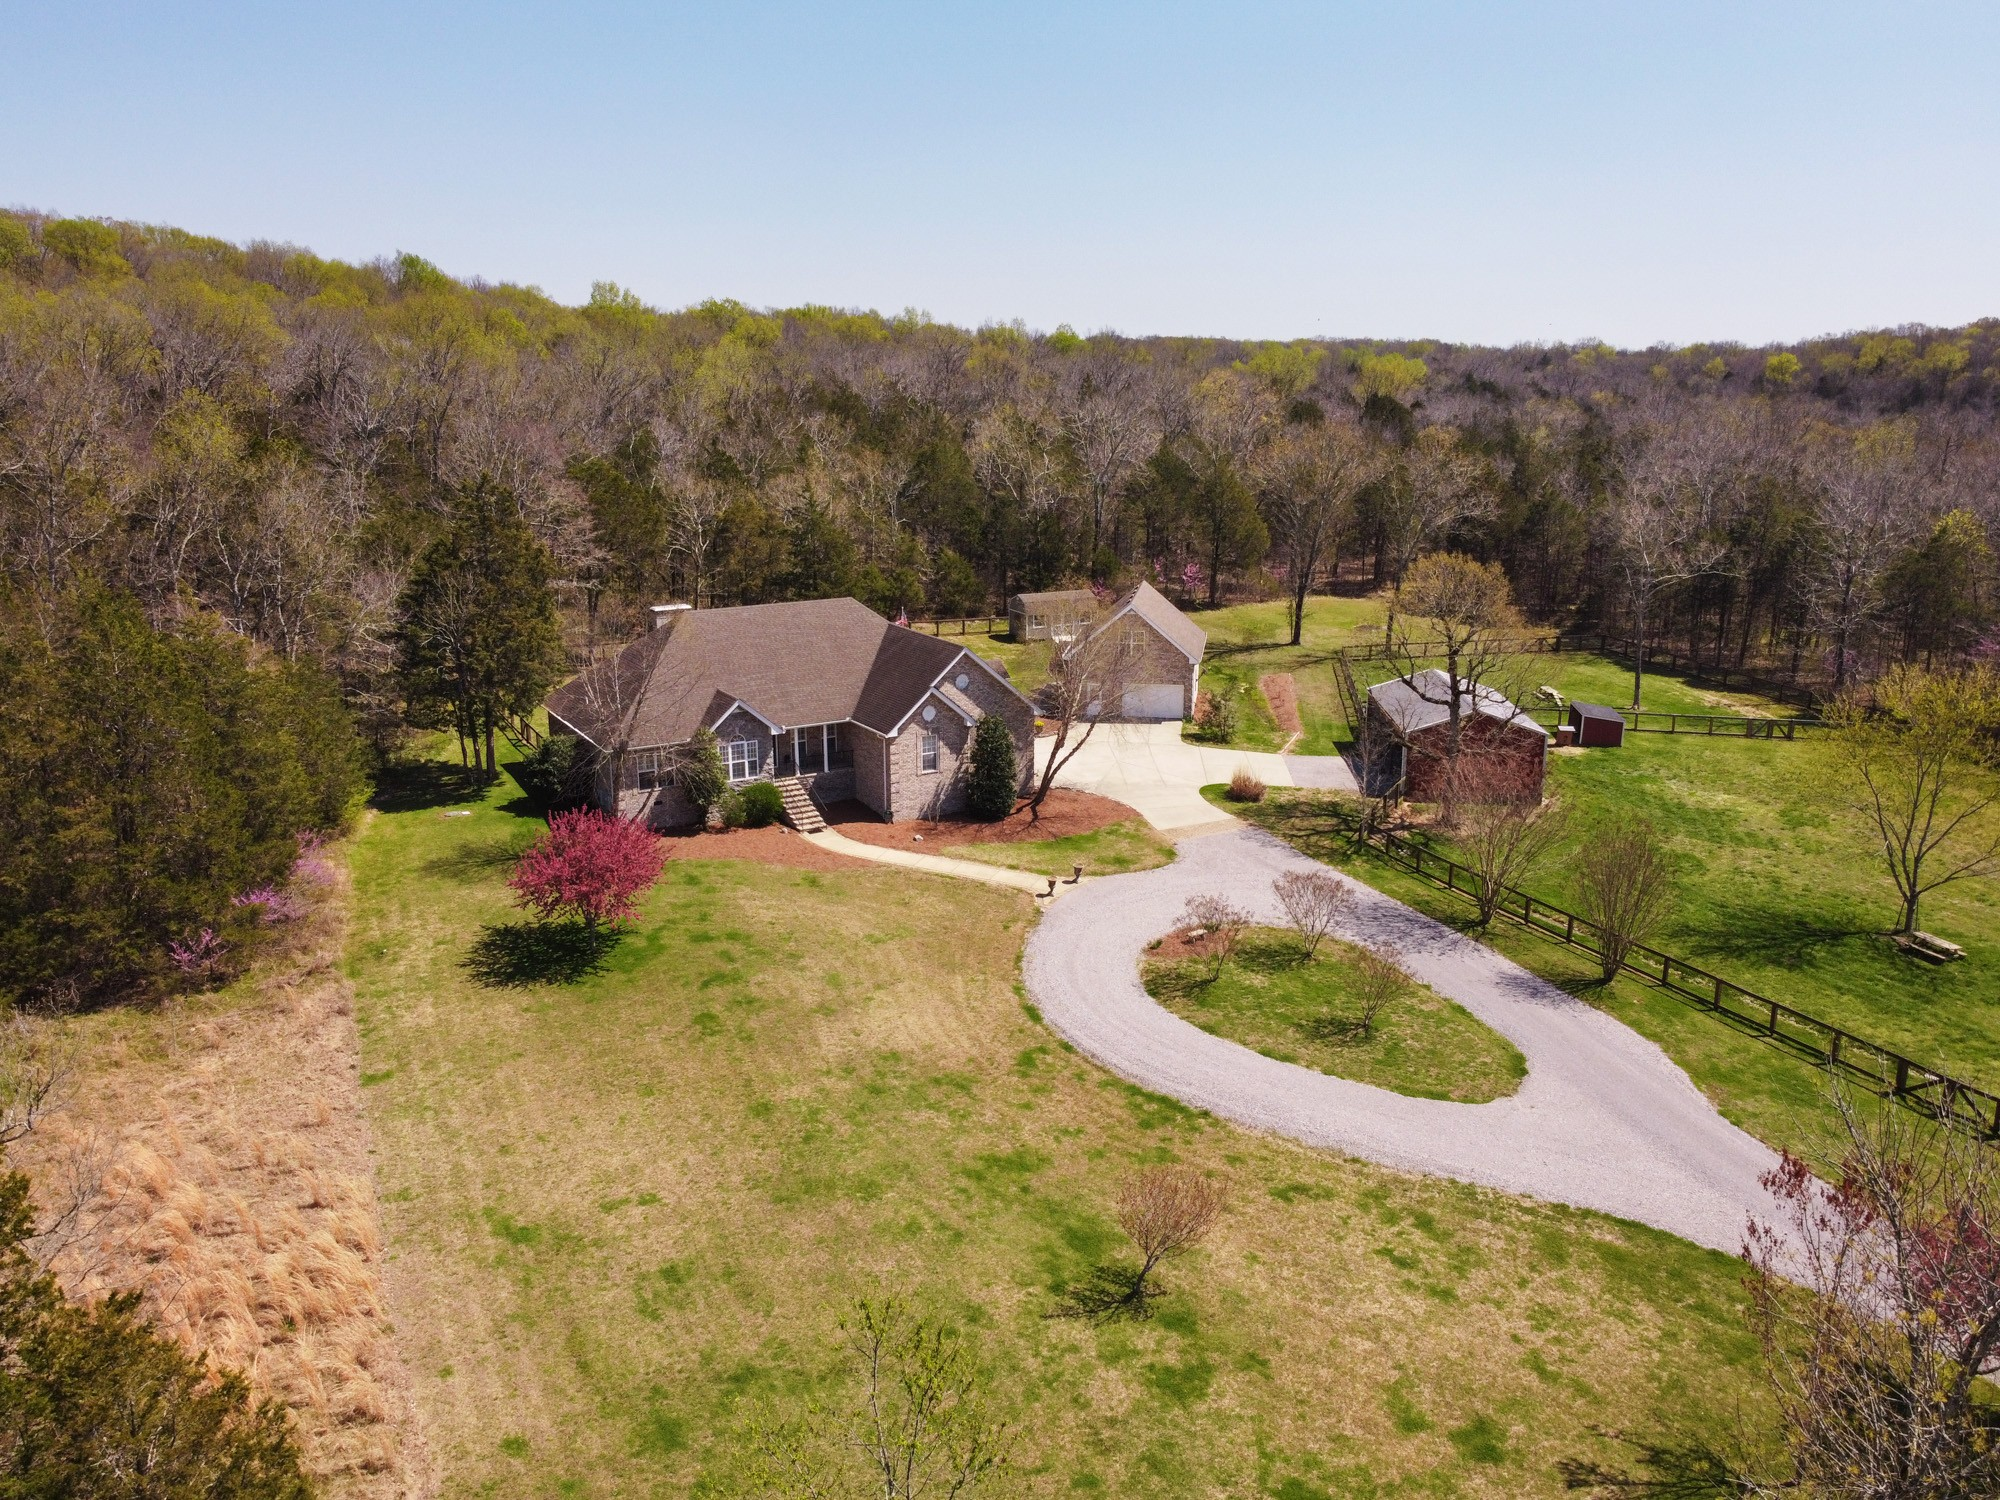 730 Steeplechase Dr Property Photo - Lebanon, TN real estate listing